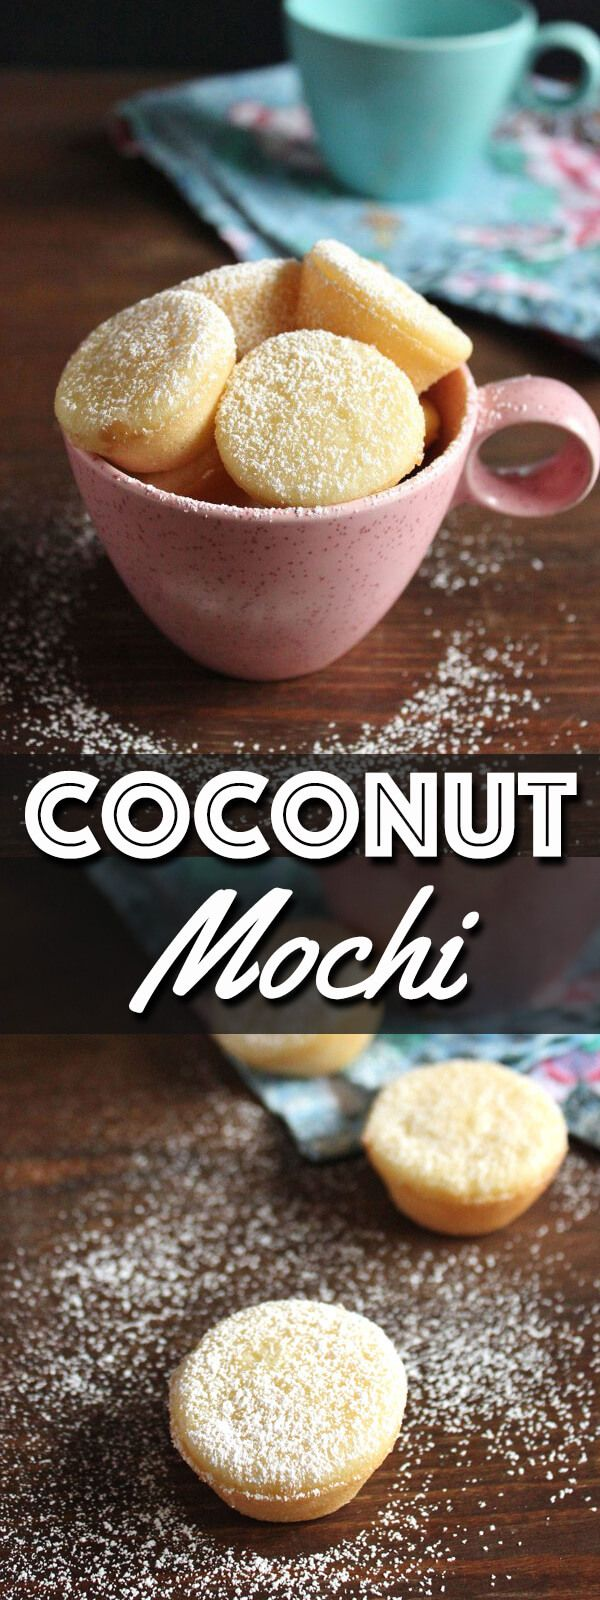 CoconutMochi are chewy little treats made with sweet rice flour and coconut milk. They are similar to the Hawaiian buttermochi but lighter in flavor. | wildwildwhisk.com